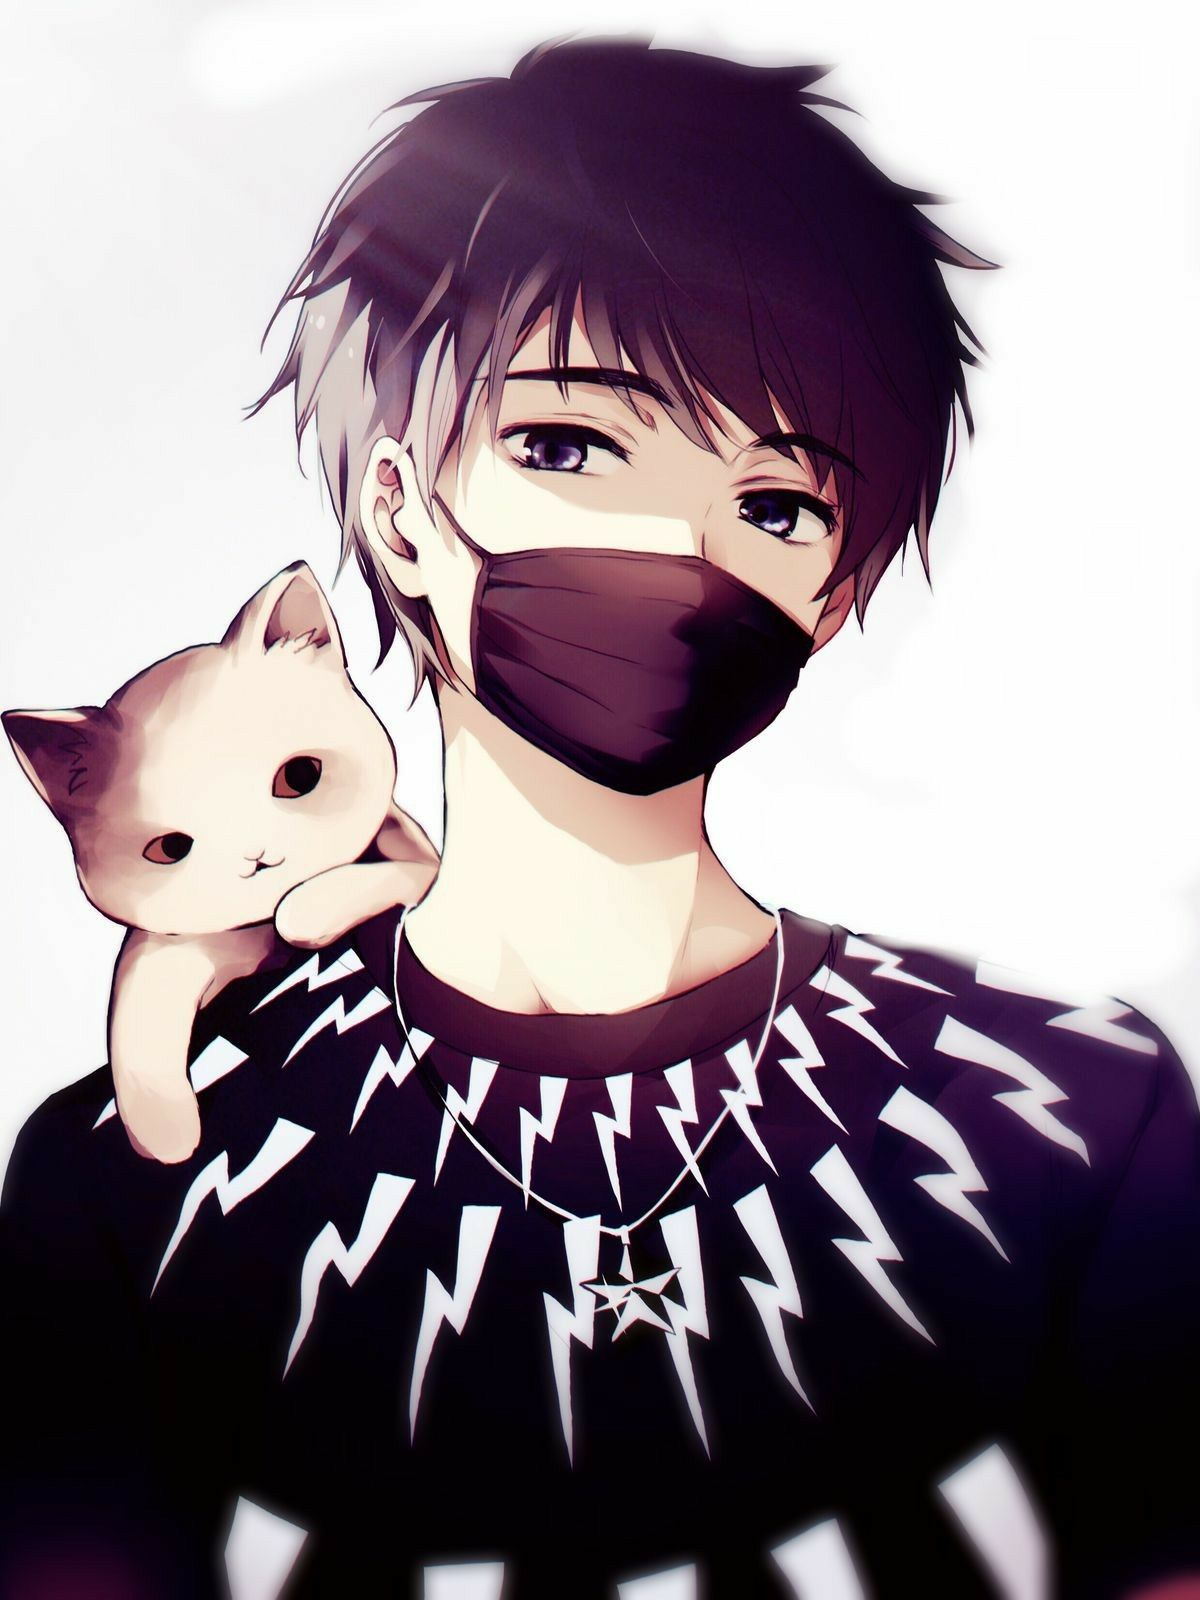 Anime Boy Cool Wallpapers Wallpaper Cave